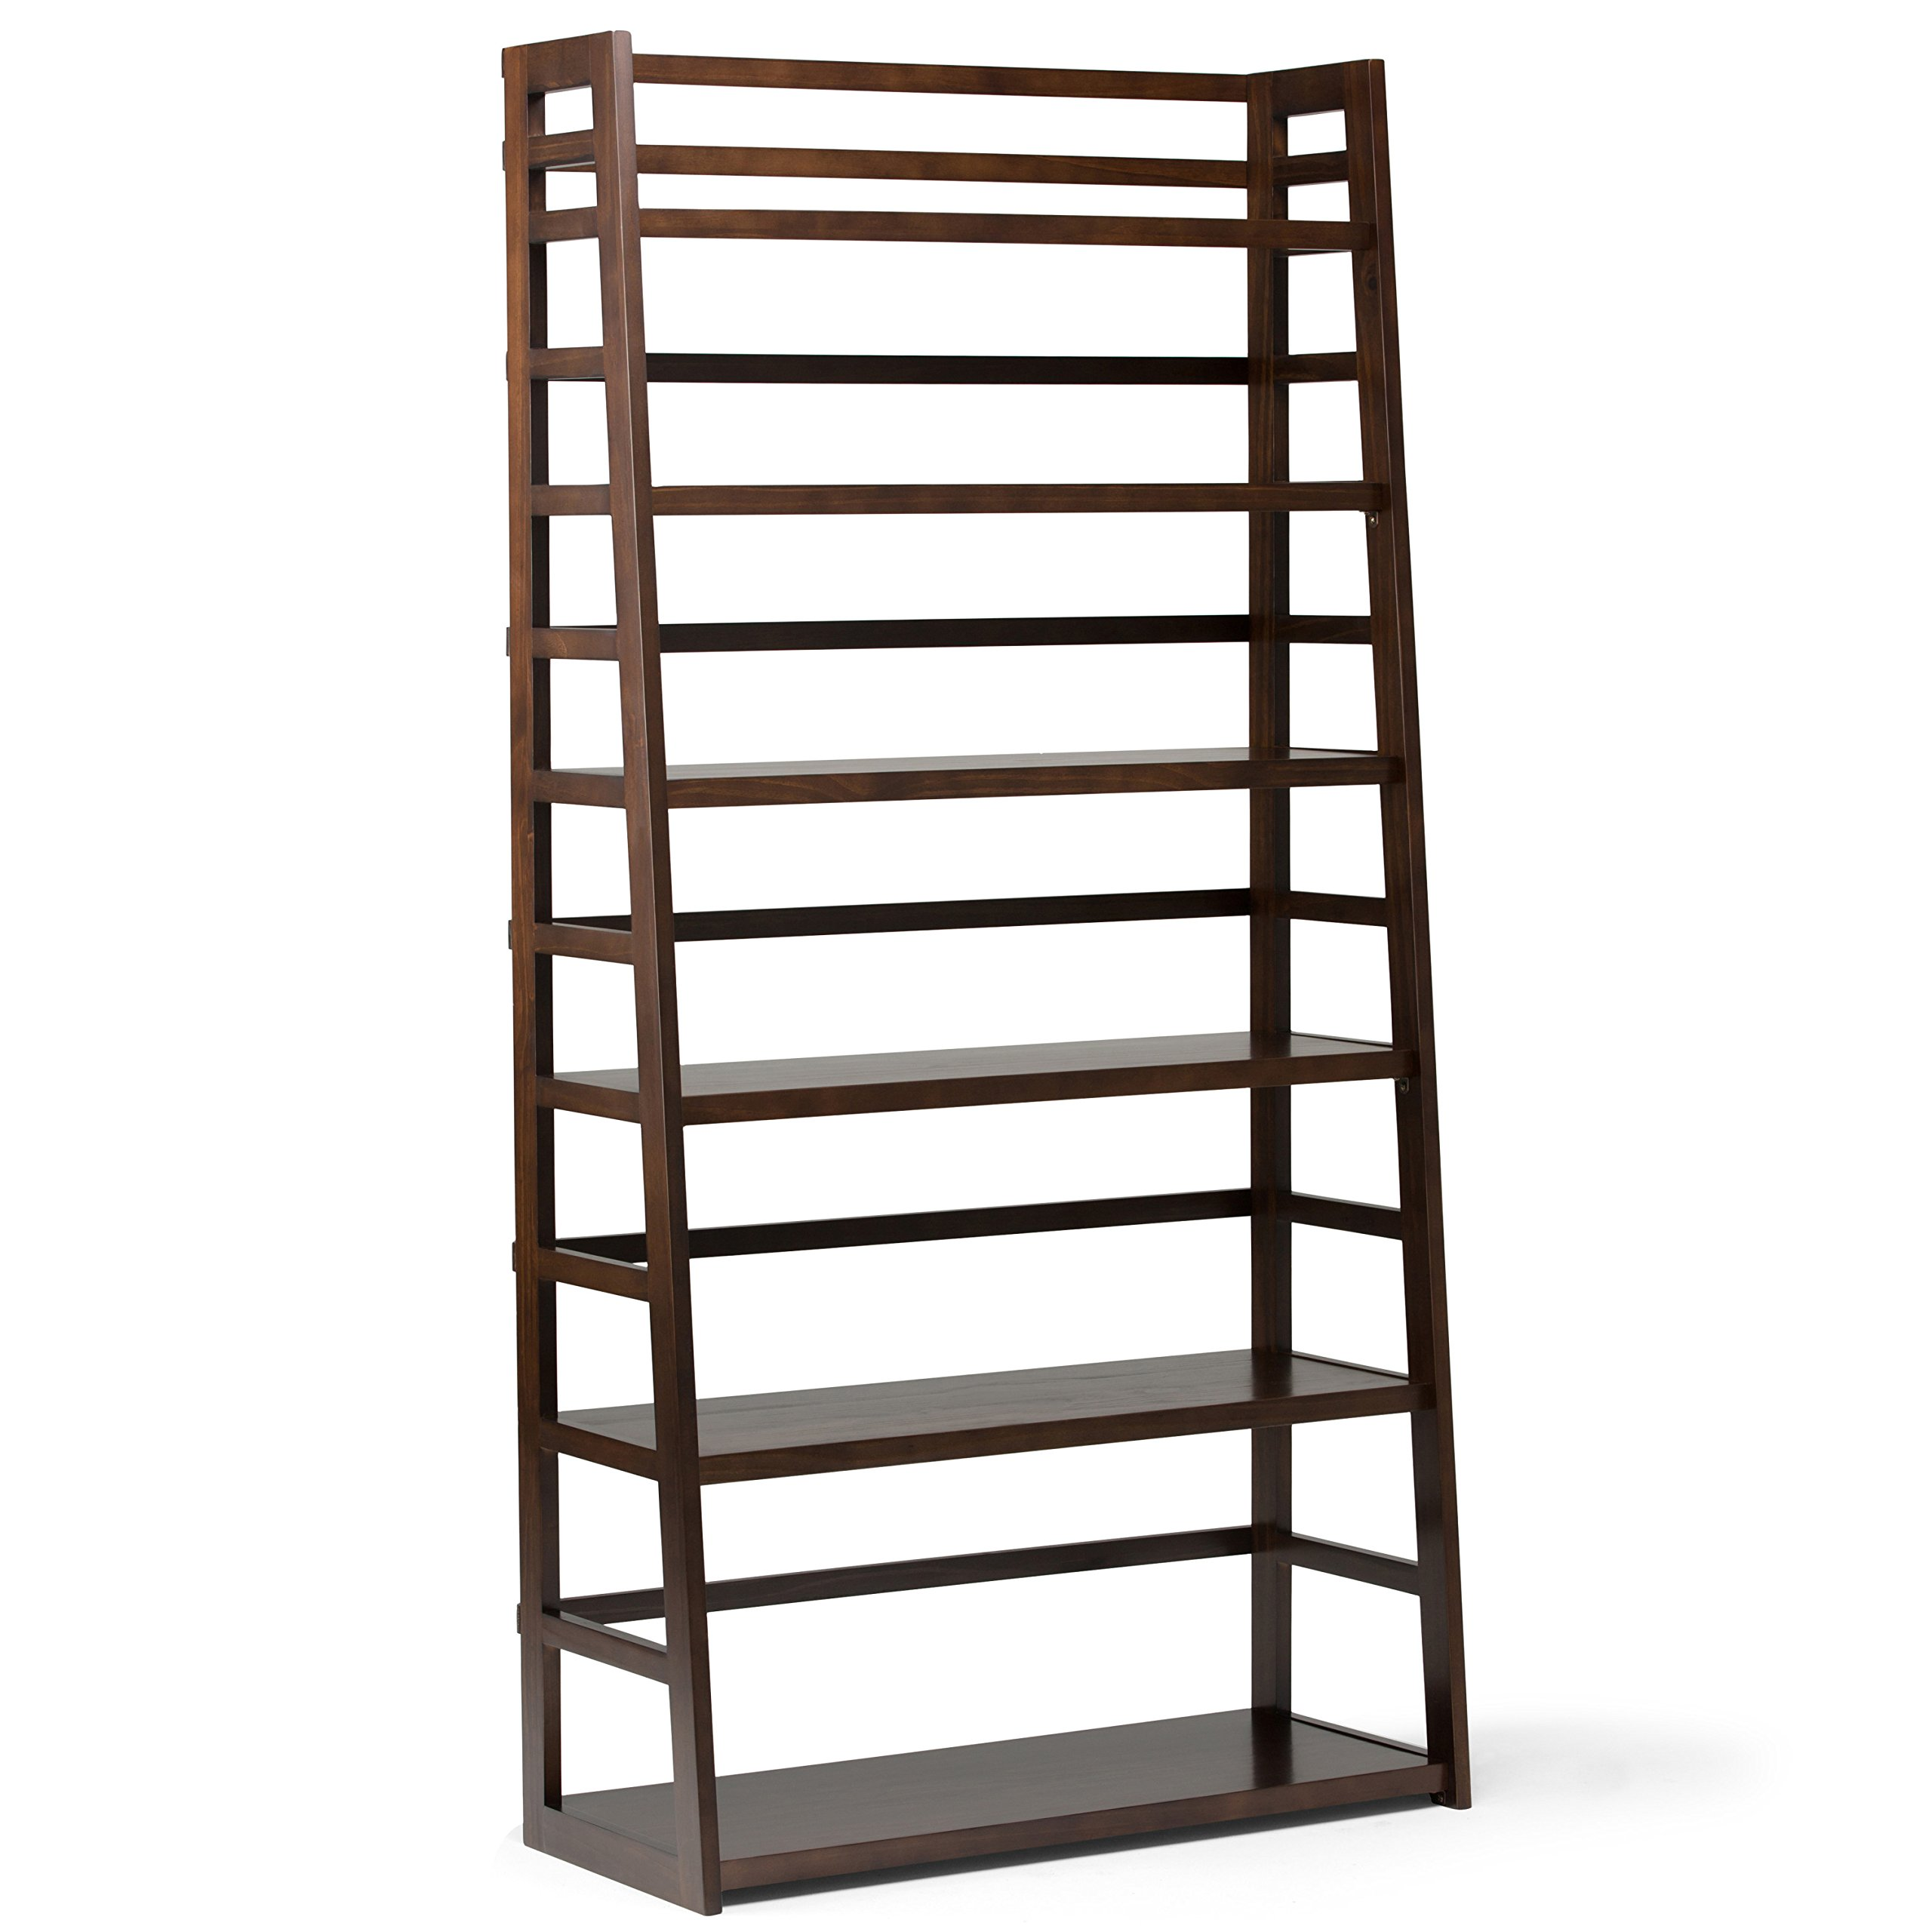 Simpli Home AXSS008KDW Acadian Solid Wood 72 inch x 36 inch Rustic Wide Ladder Shelf Bookcase in Tobacco Brown by Simpli Home